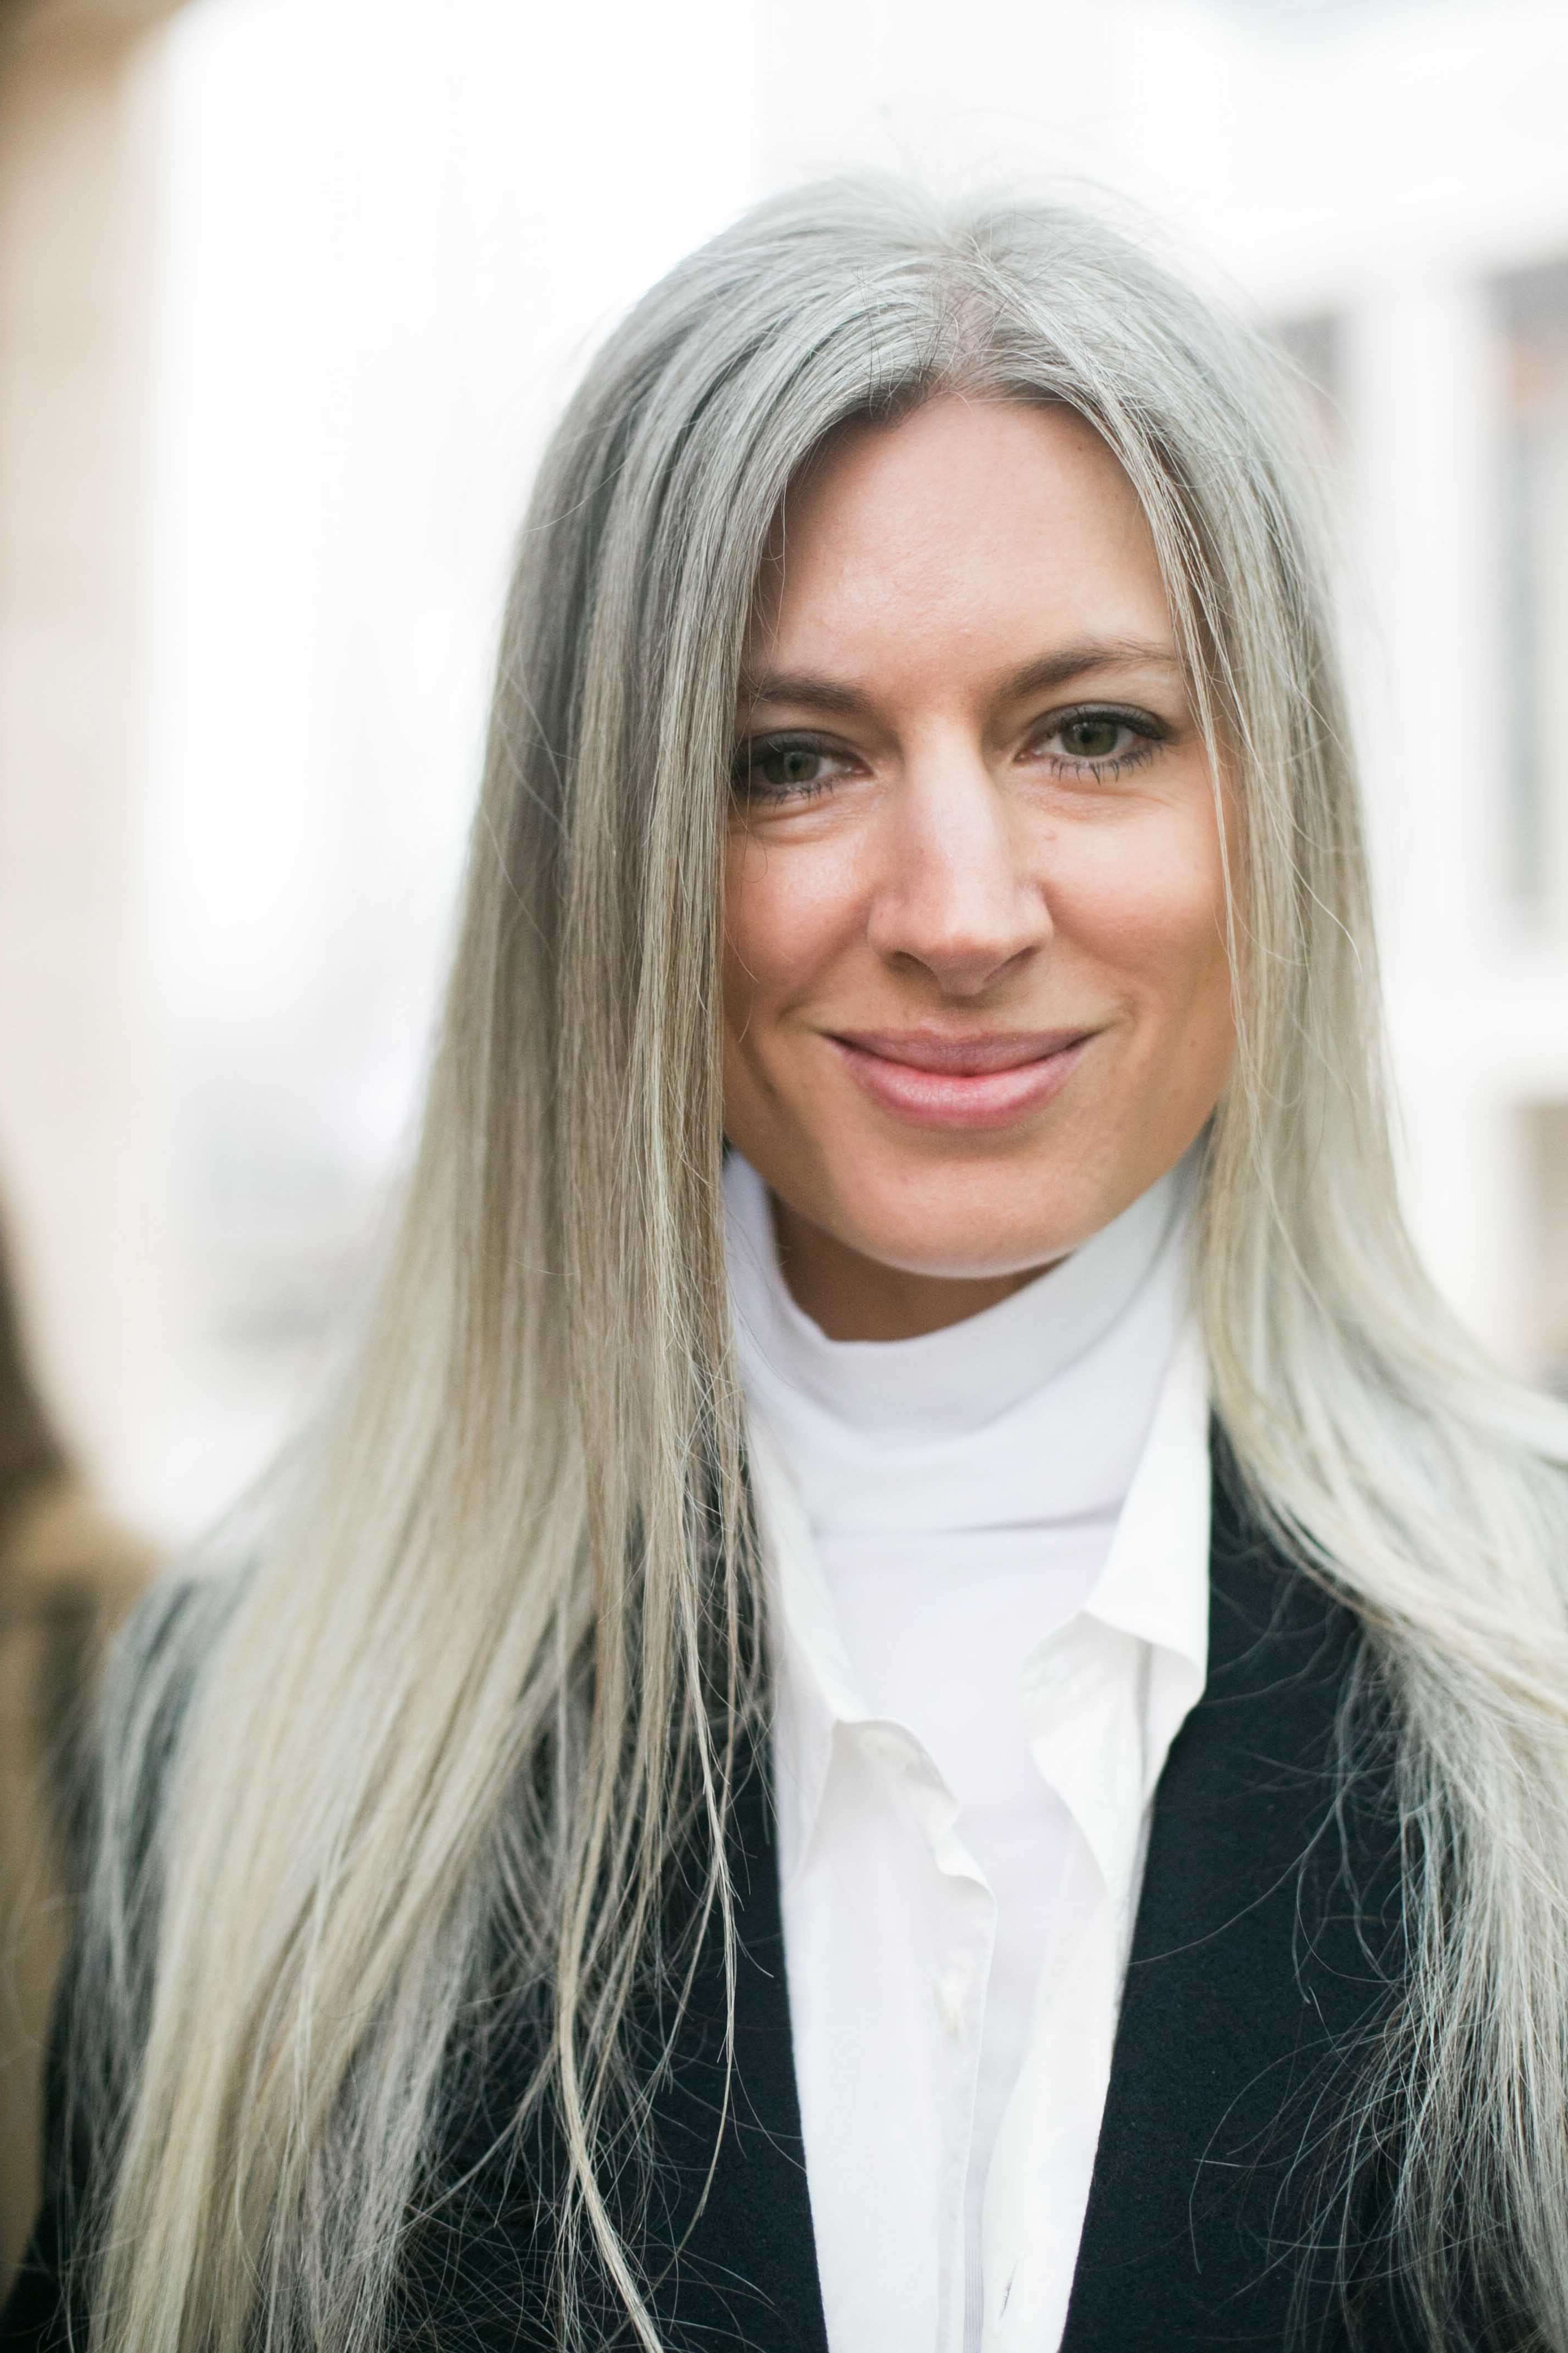 13 Trendy And Sophisticated Hairstyles For Women Over 50 Inside Silver And Sophisticated Hairstyles (View 13 of 20)